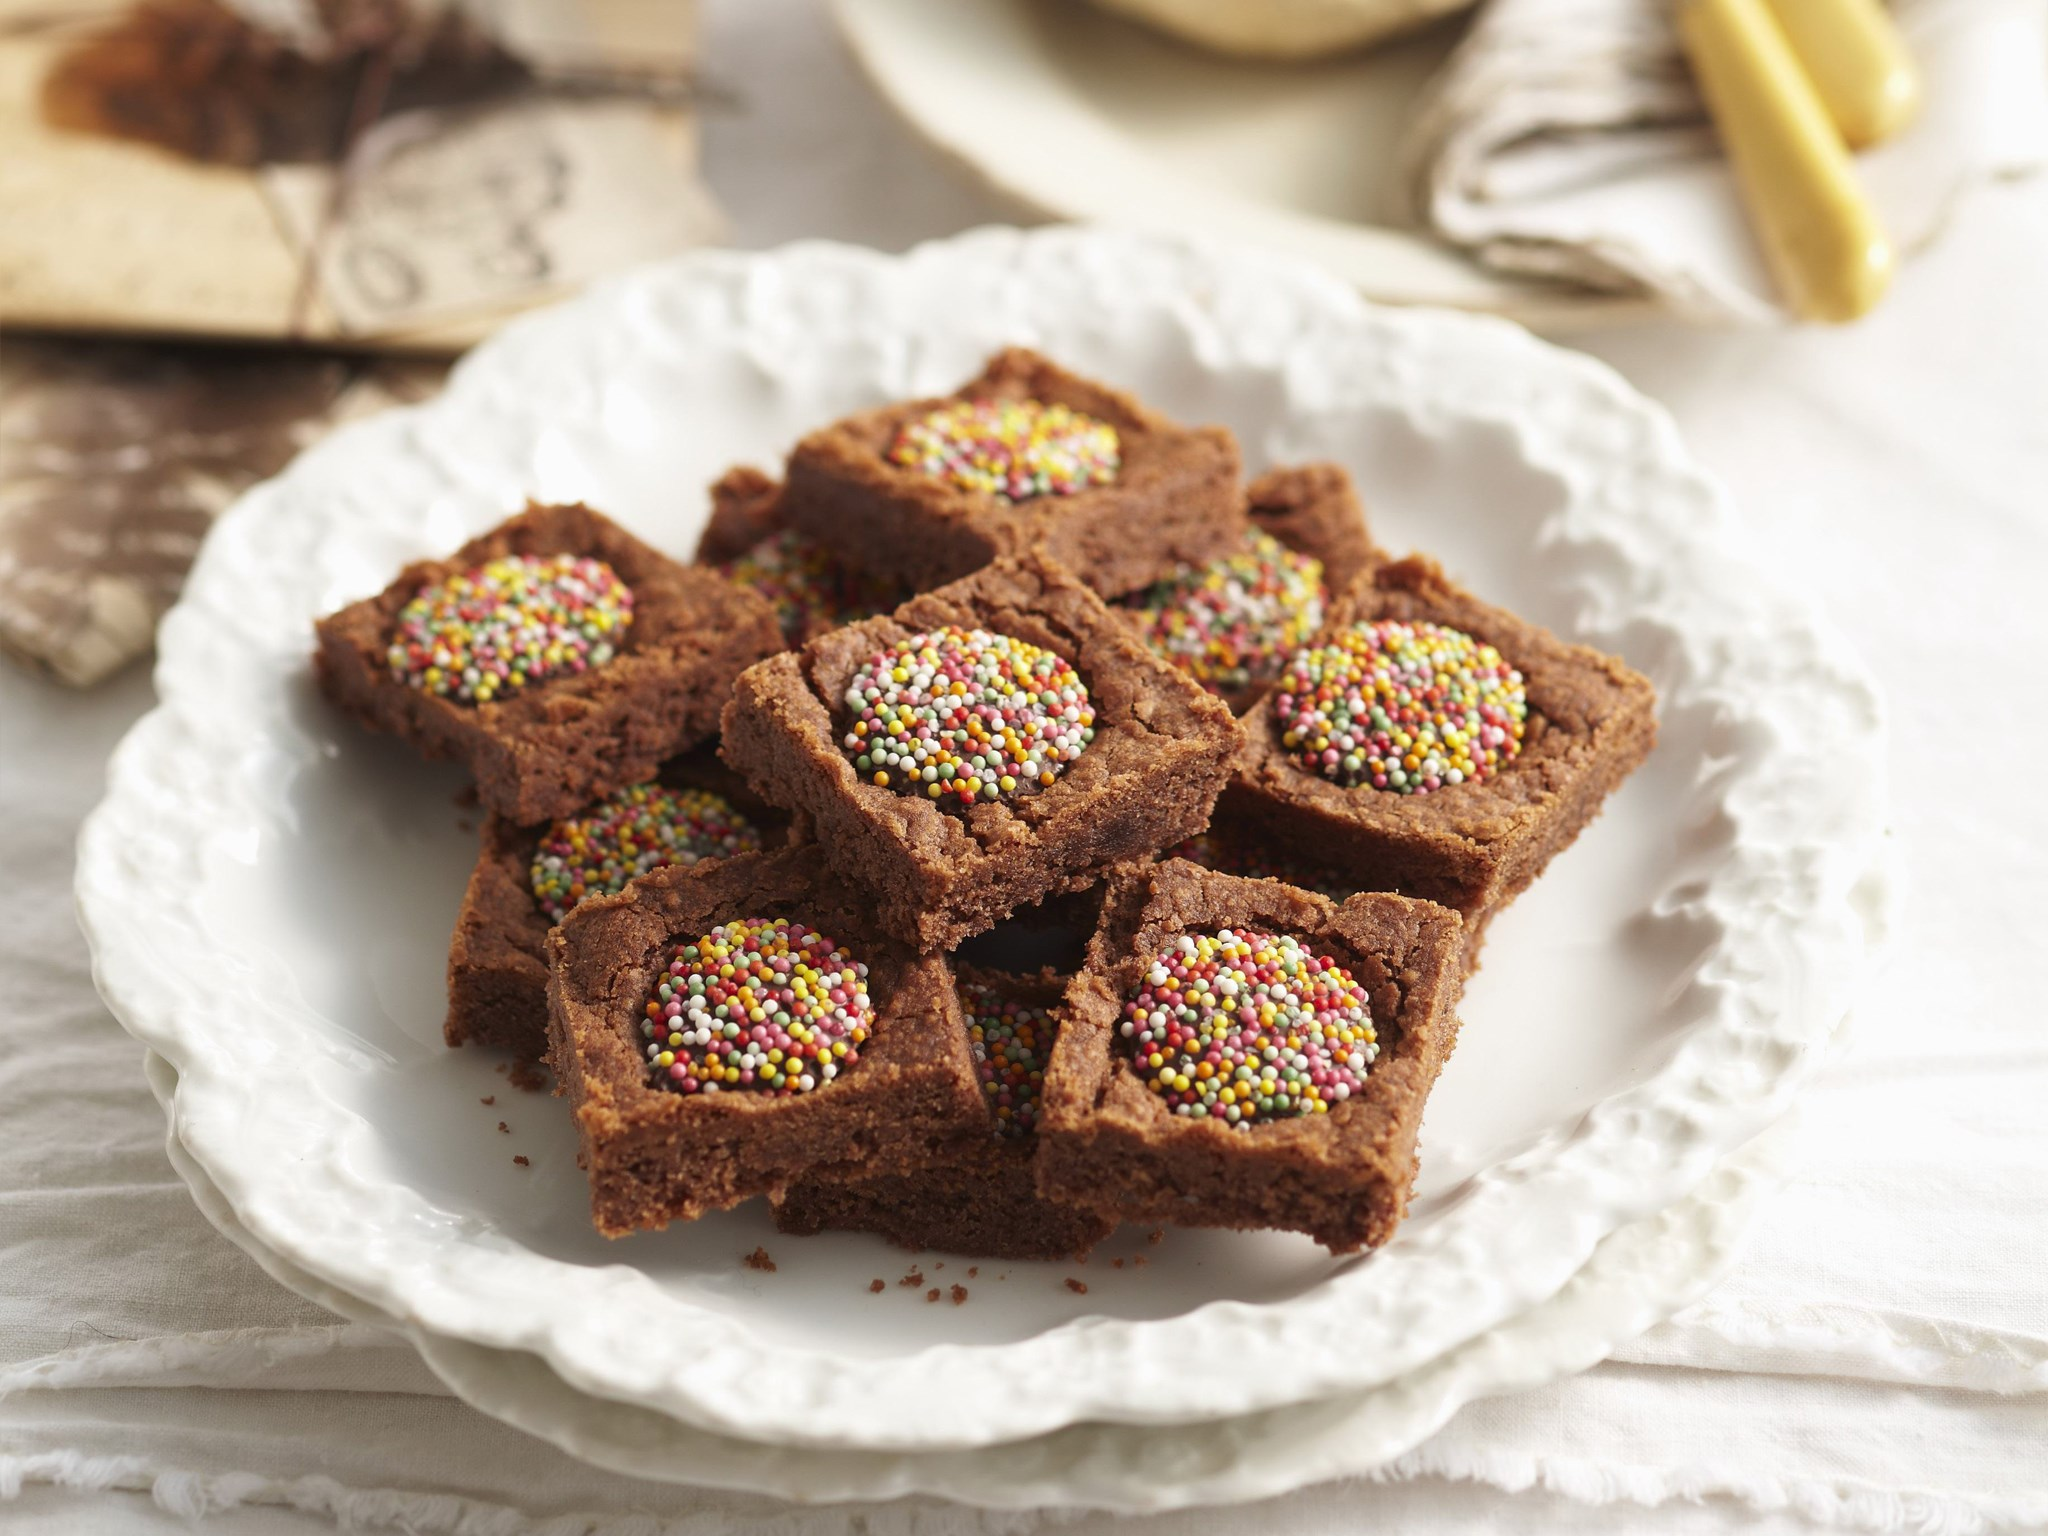 Chocolate Freckle Slice Recipe